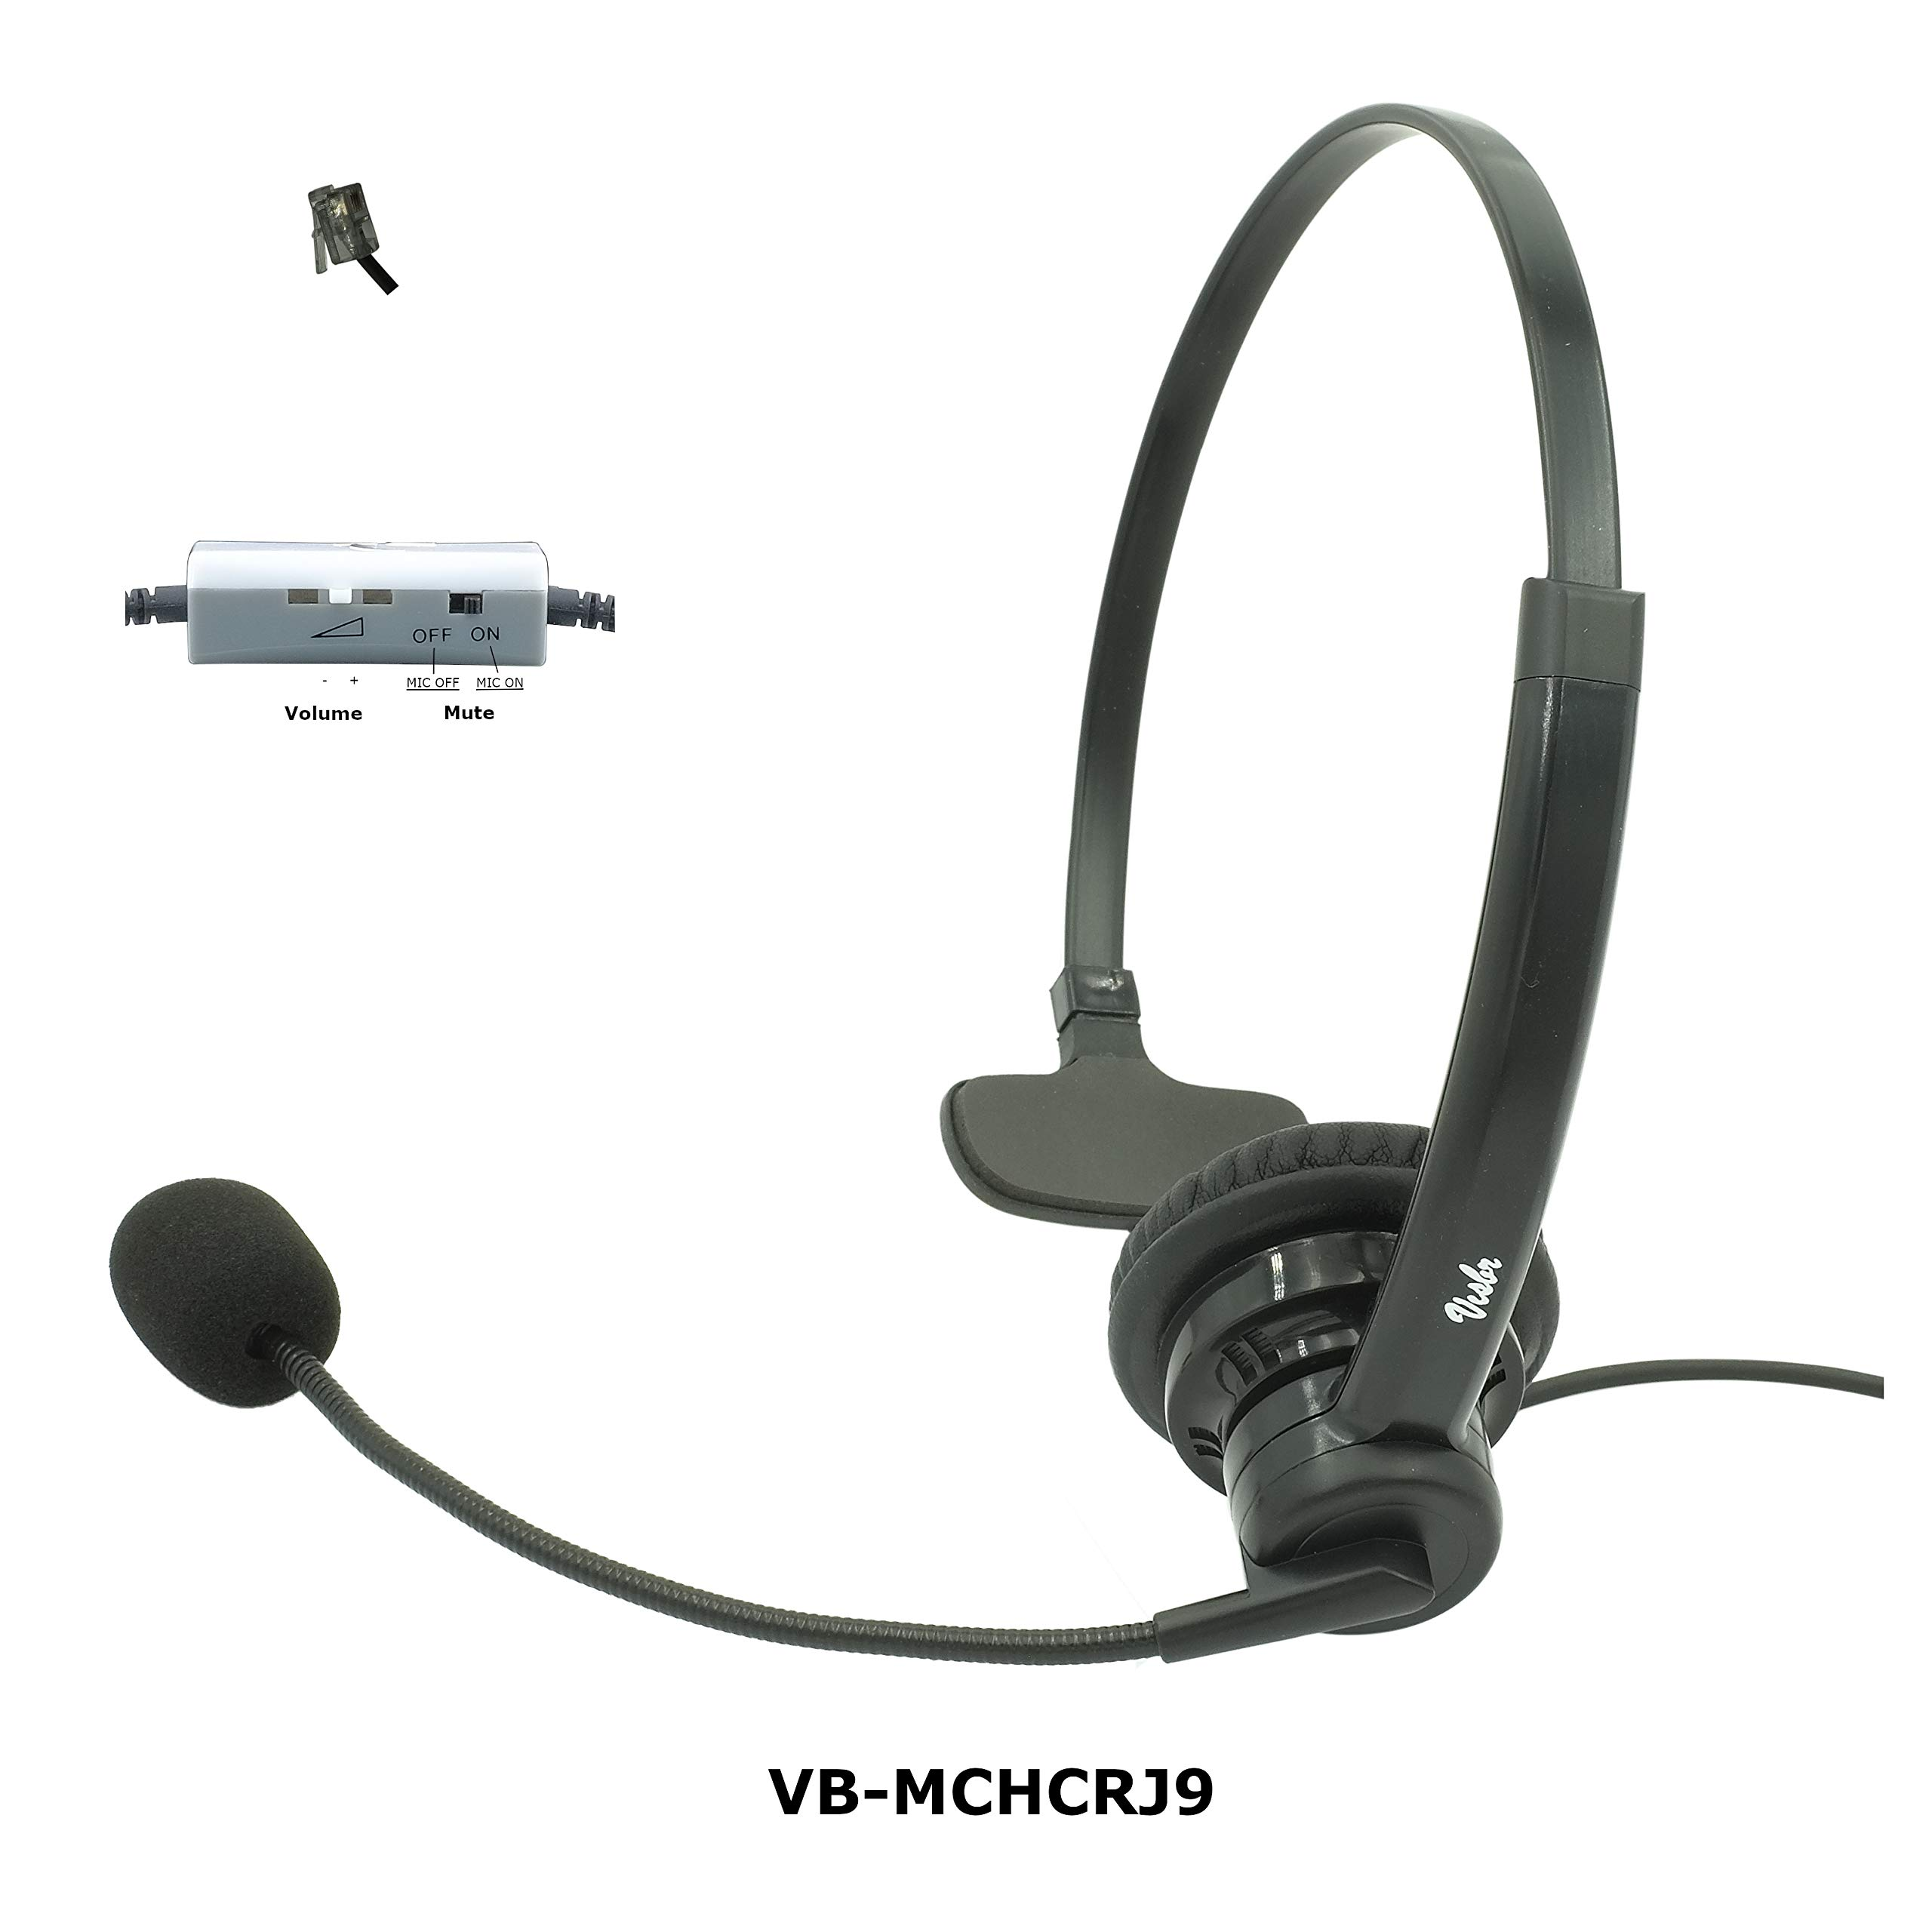 Professional Single Ear Noise Canceling Office/Call Center Headset with RJ9 Quick disconnect Cord Works with Cisco, Avaya, Polycom, Mitel, Yealink, Grandstream, NEC, Nortel, Shoretel, Allworx & more by VISBR